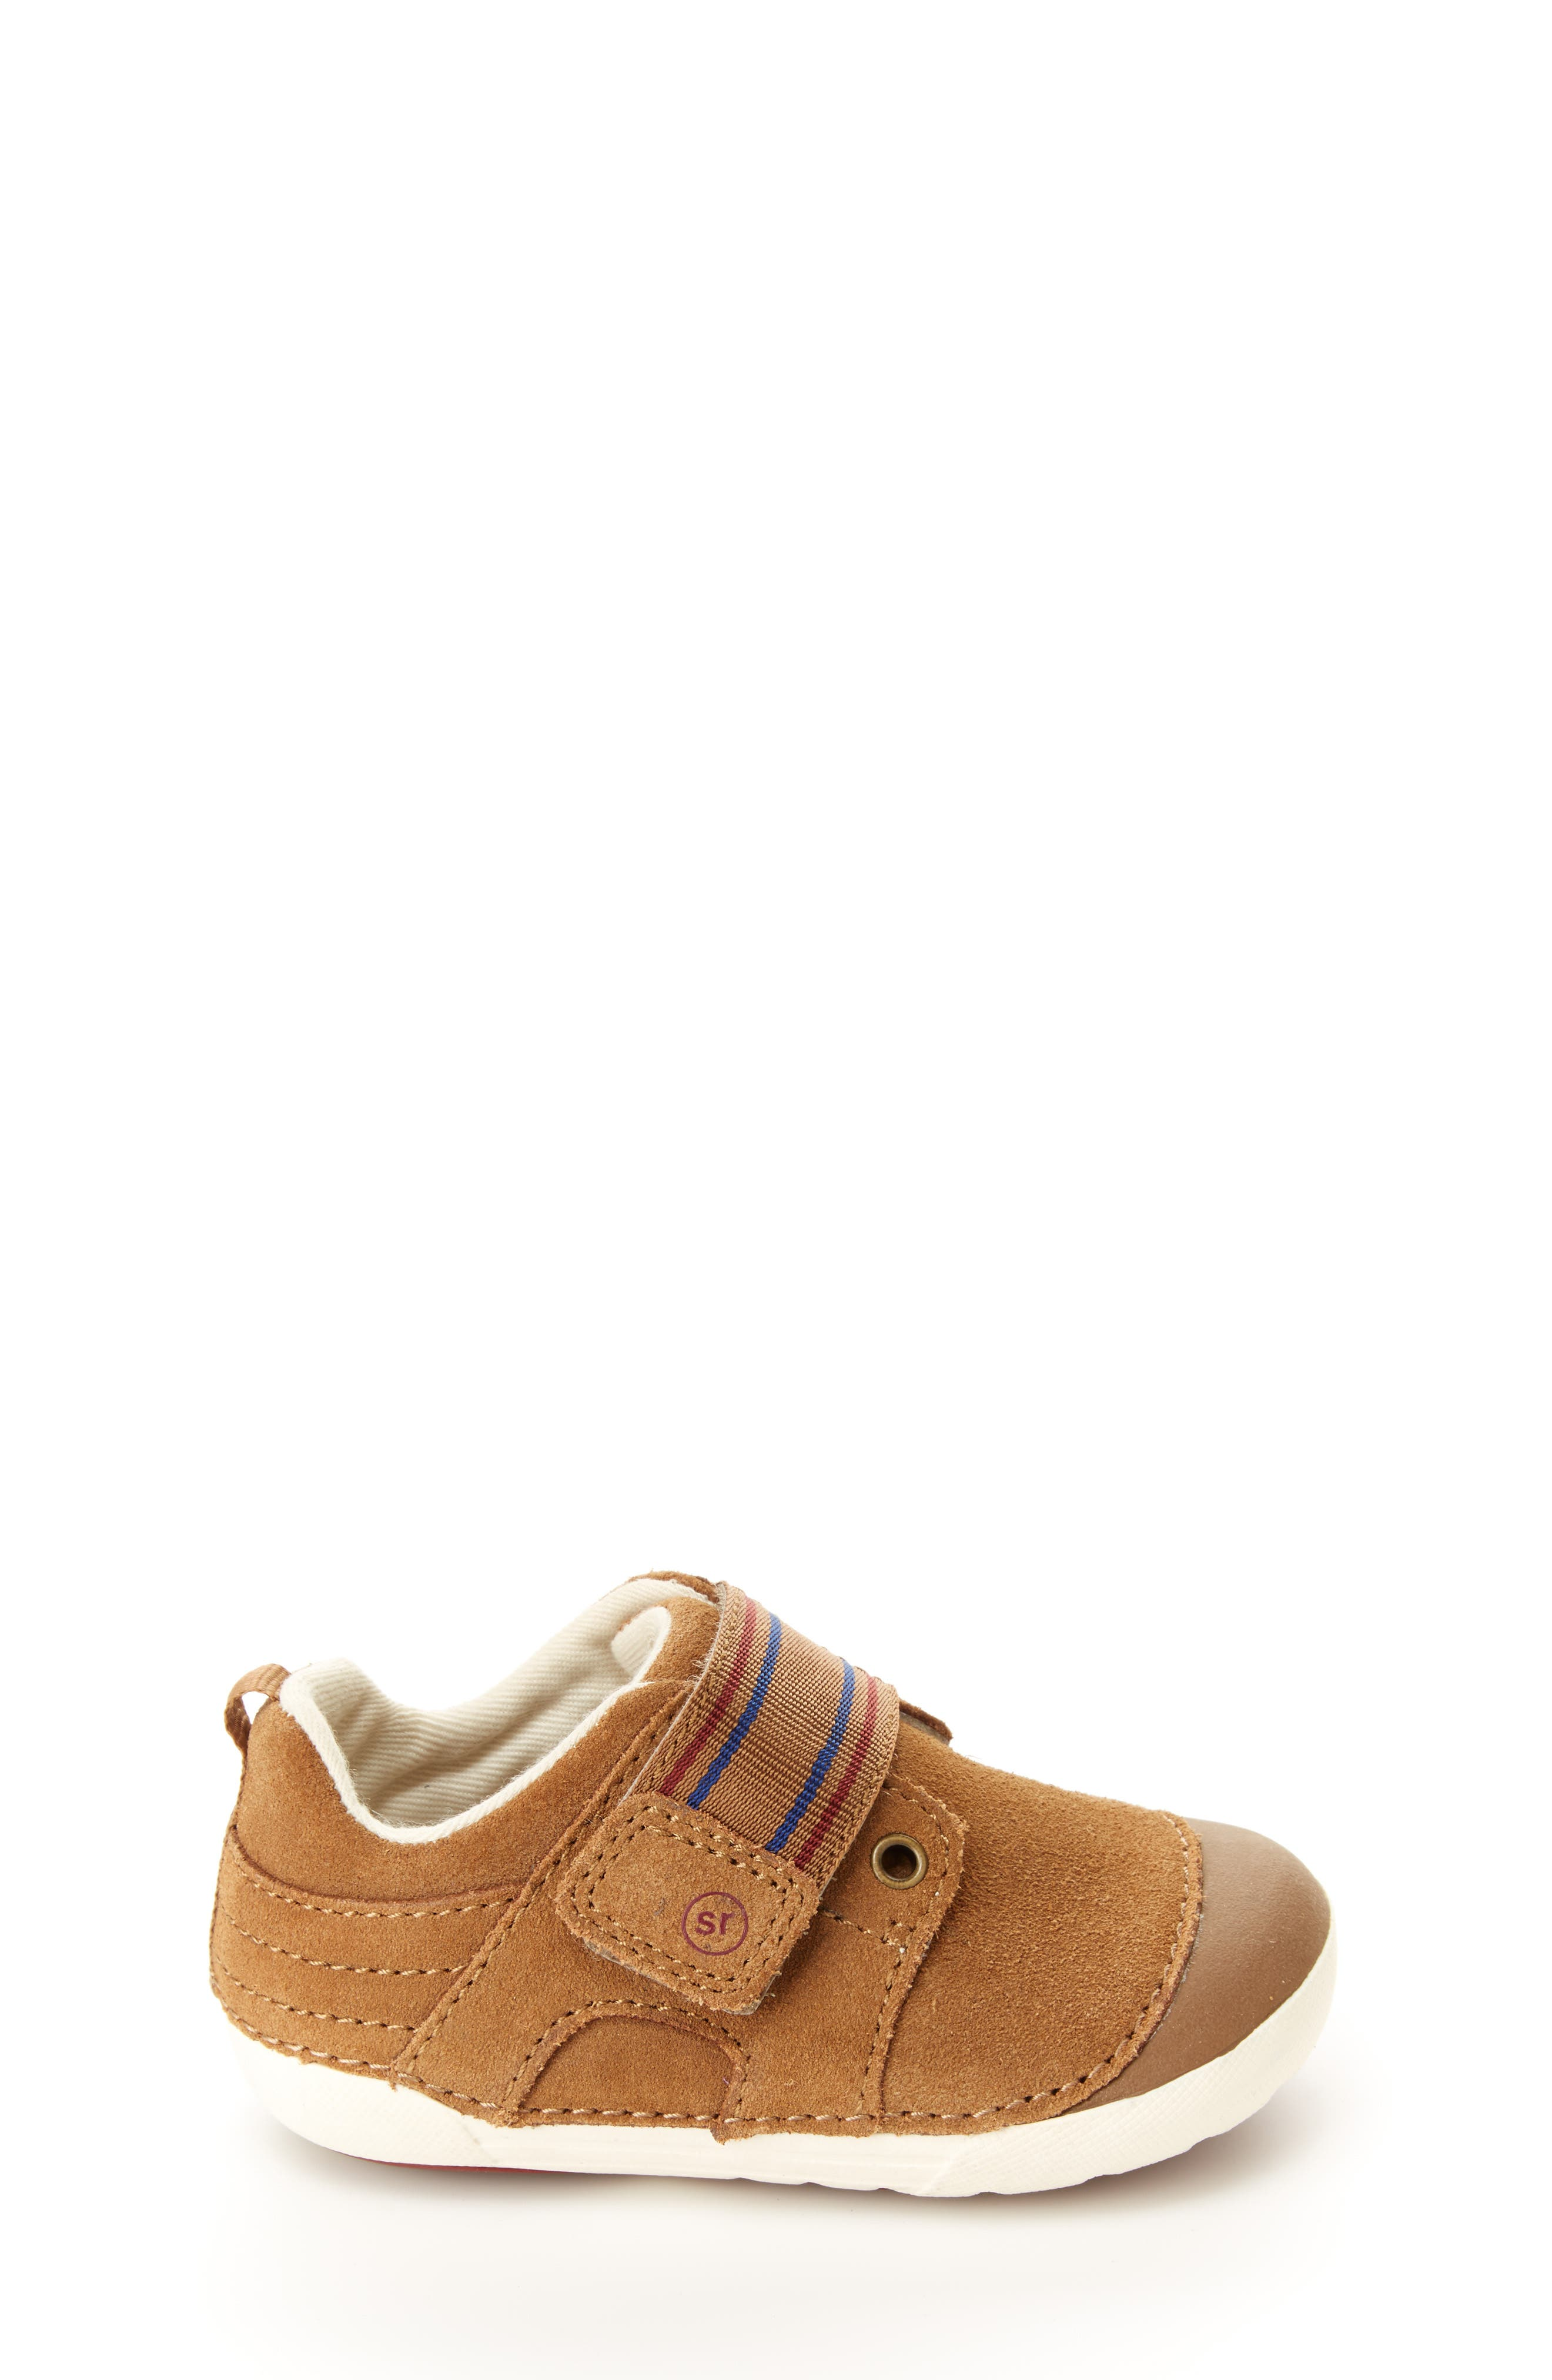 STRIDE RITE, Soft Motion<sup>™</sup> Cameron Sneaker, Alternate thumbnail 2, color, BROWN